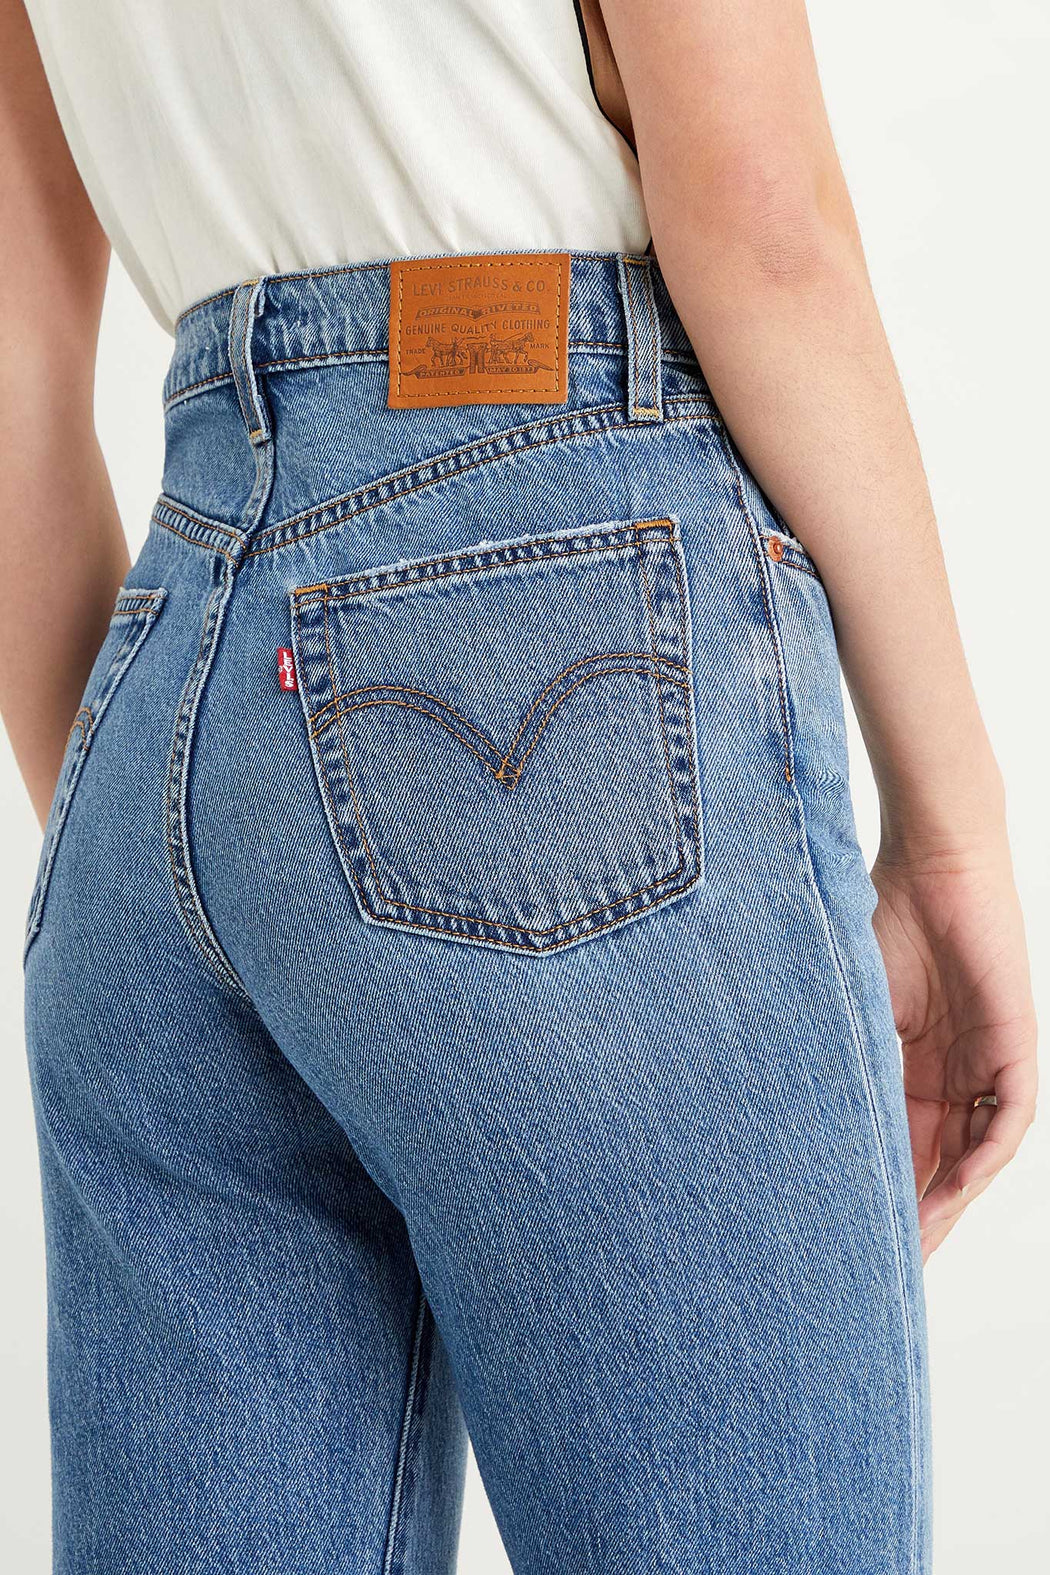 Levi's Ribcage Straight Ankle Jean Haight at the Ready